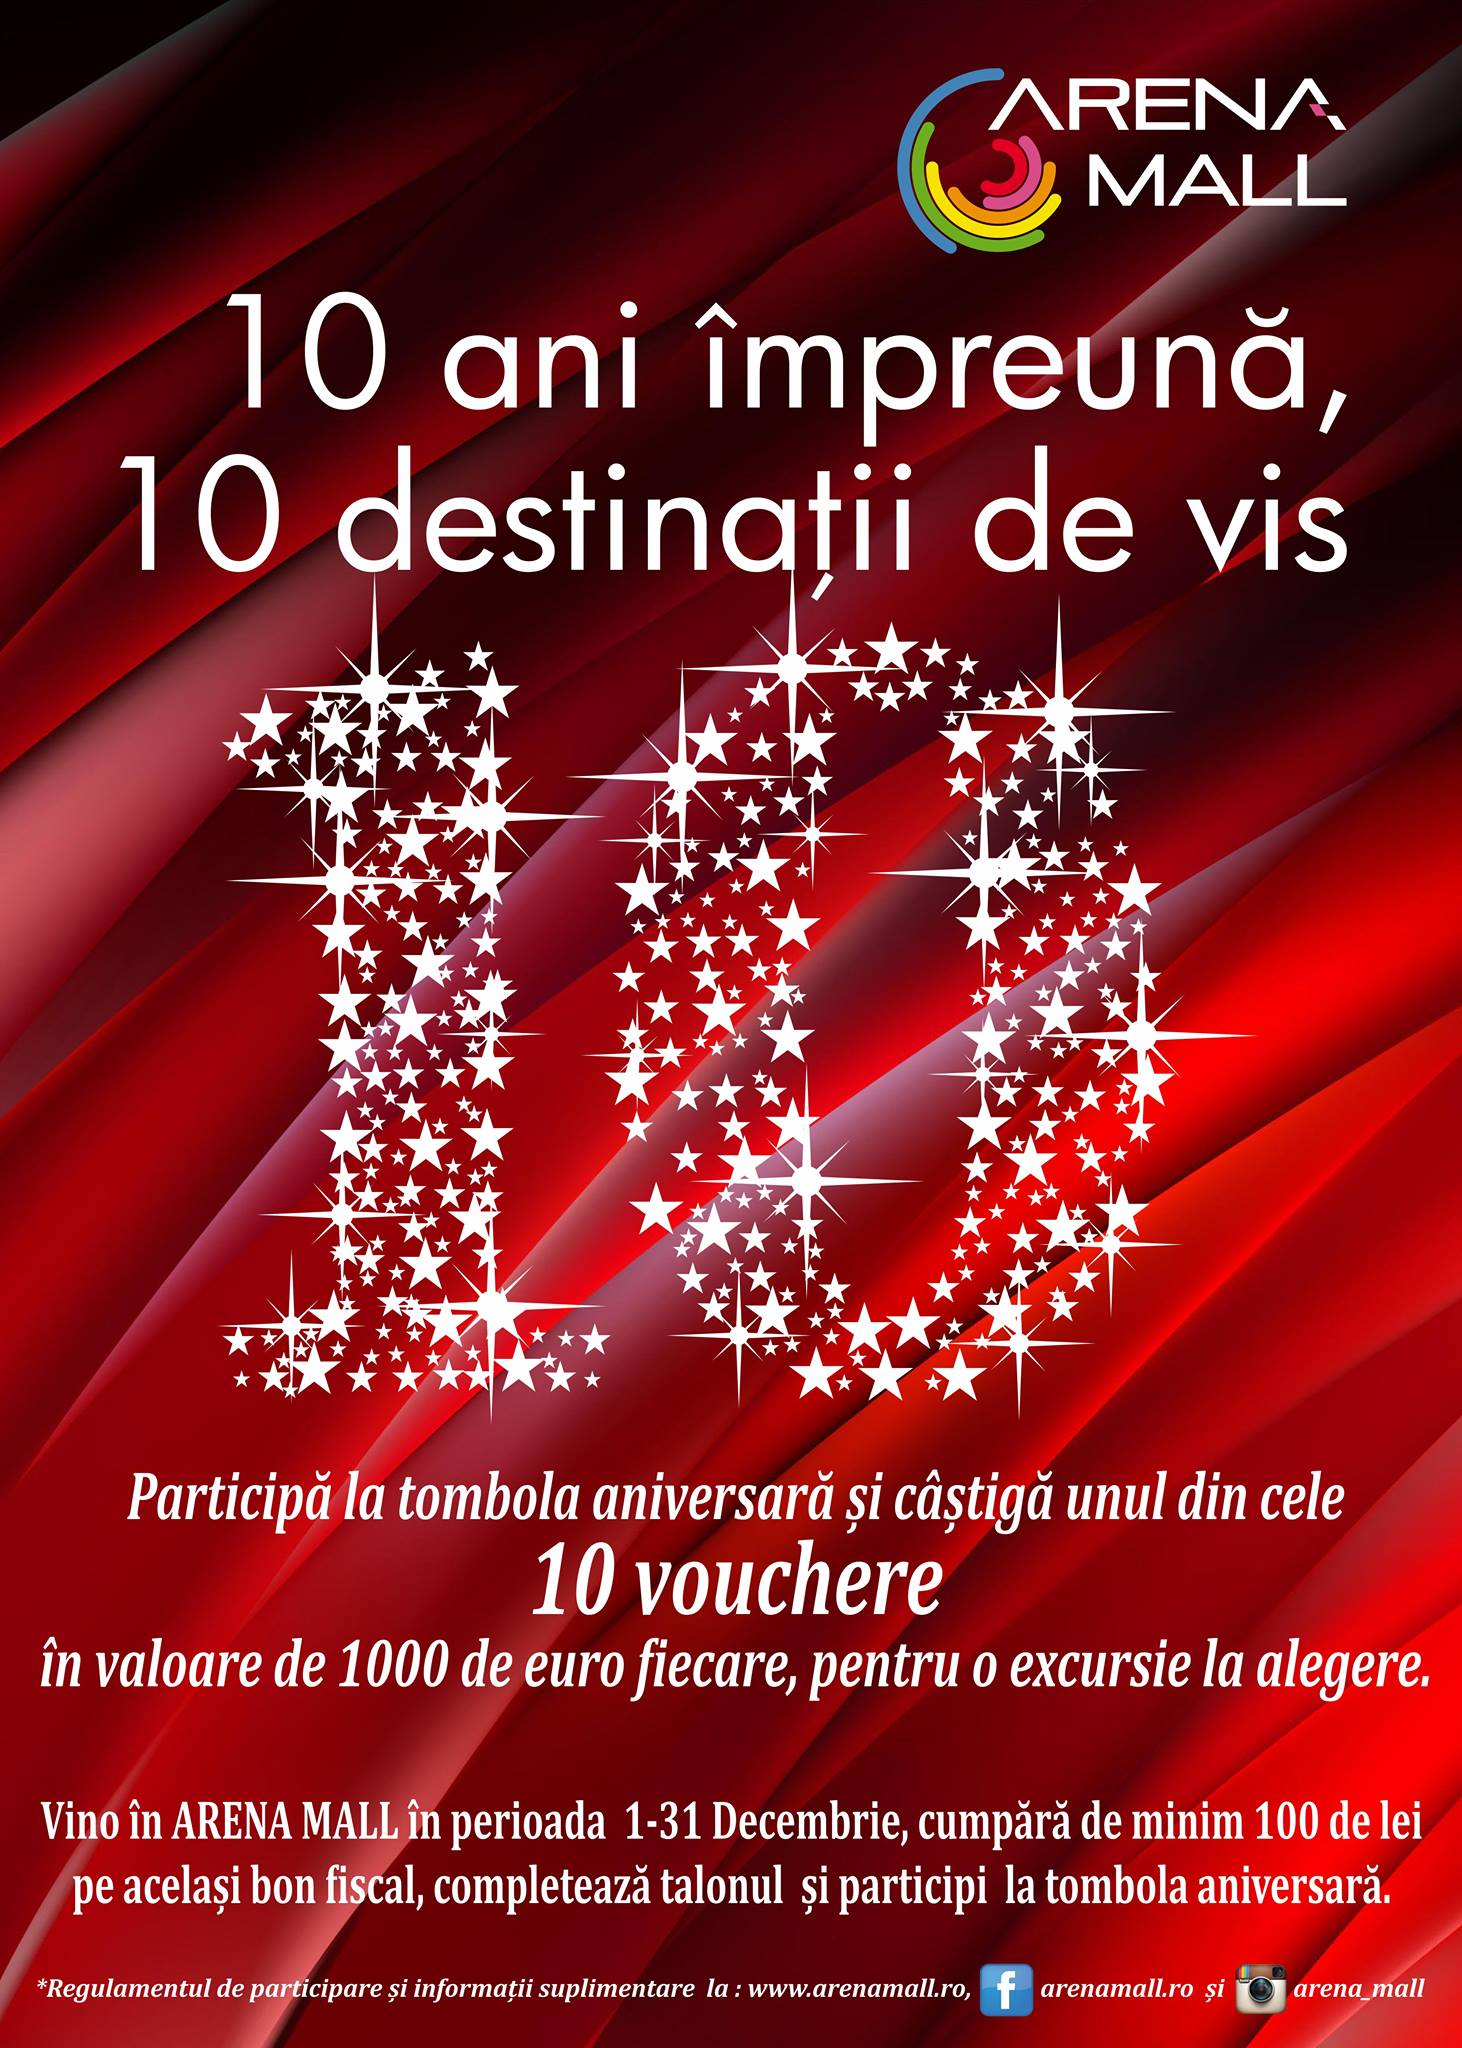 Tombola-aniversara-10-ani-de-arena-mall-10-destinatii-de-vis-vouchere-tui-travel-center-10-ani-arena-mall-bacau